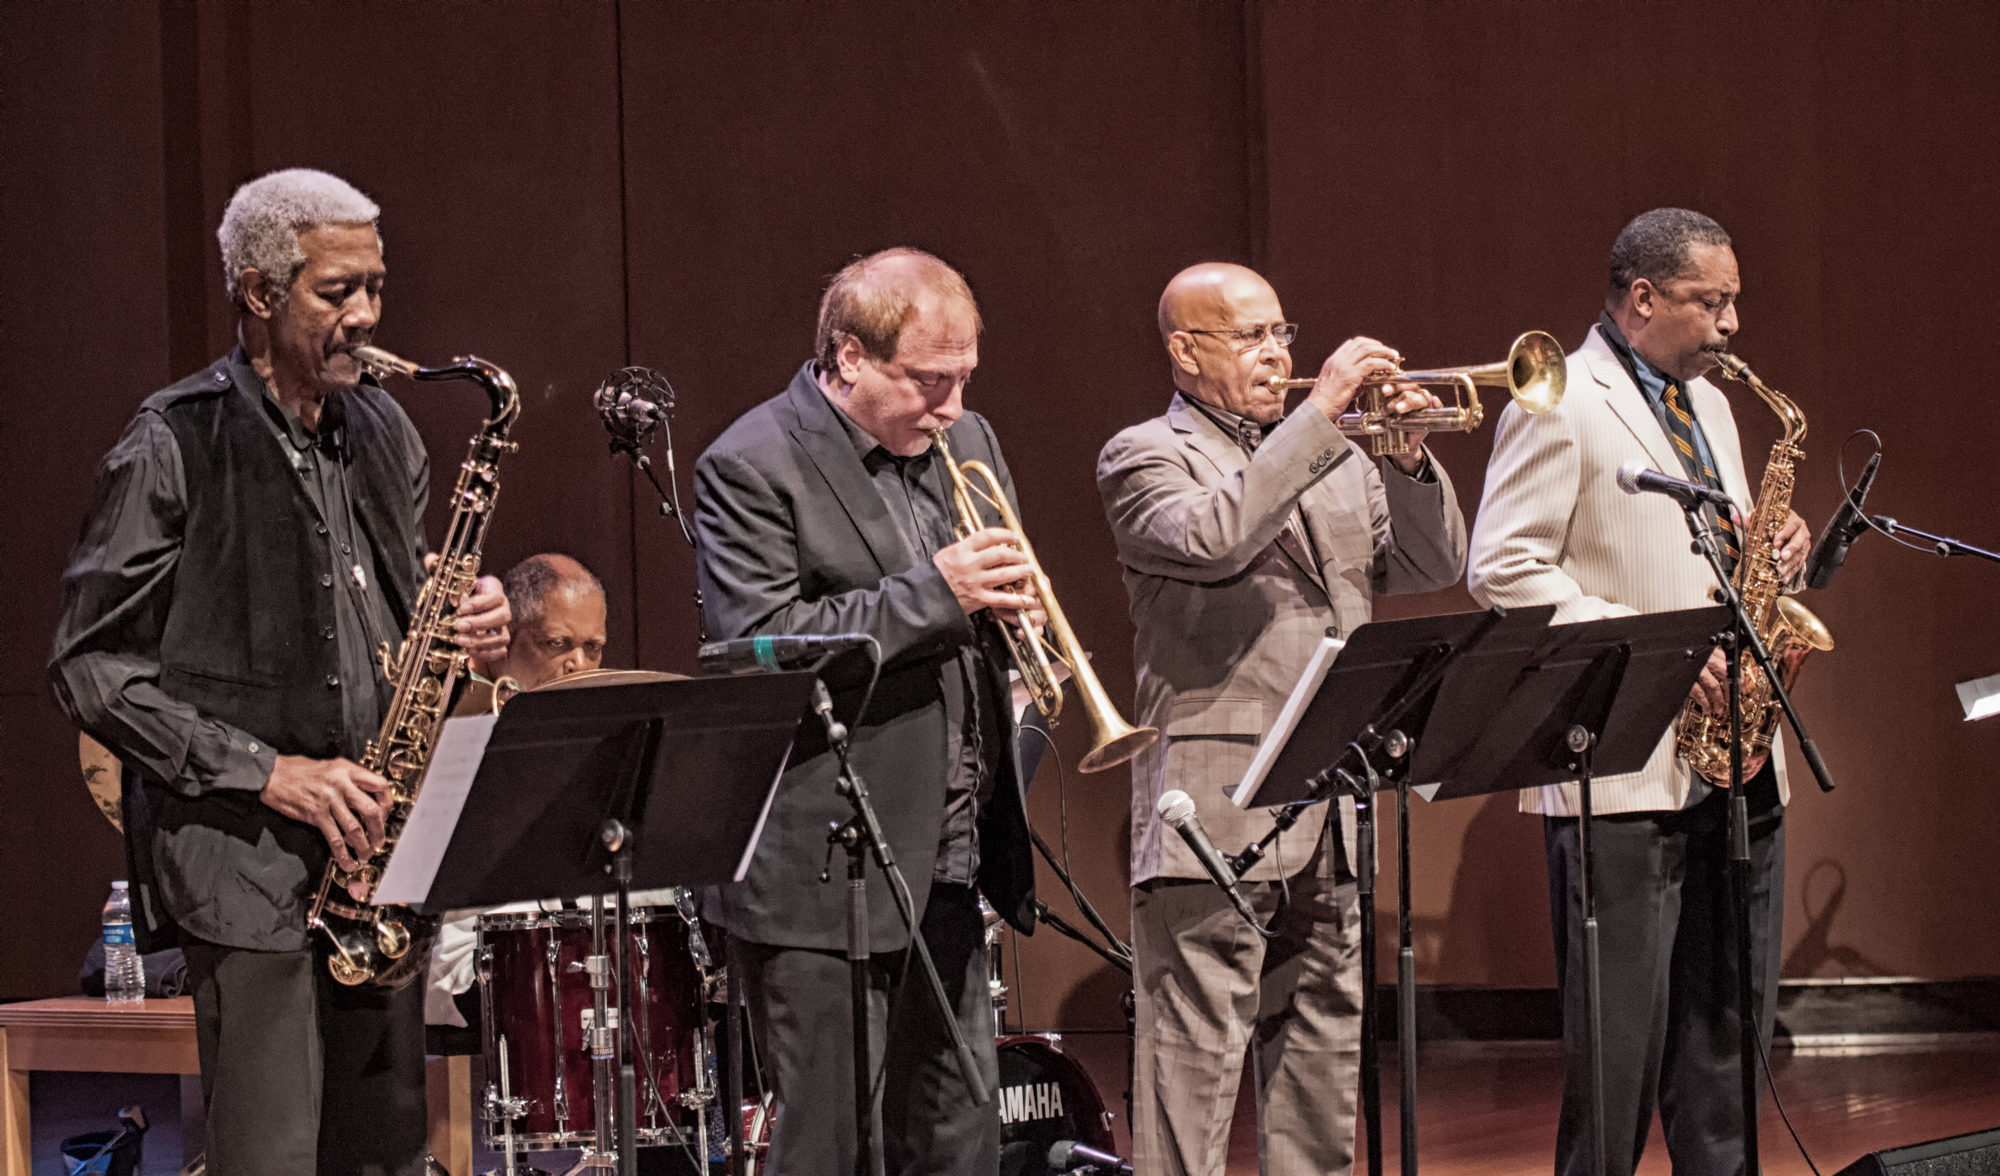 Billy Harper, David Weiss, Eddie Henderson And Donald Harrison With The Cookers At The Musical Instrument Museum (mim) In Phoenix